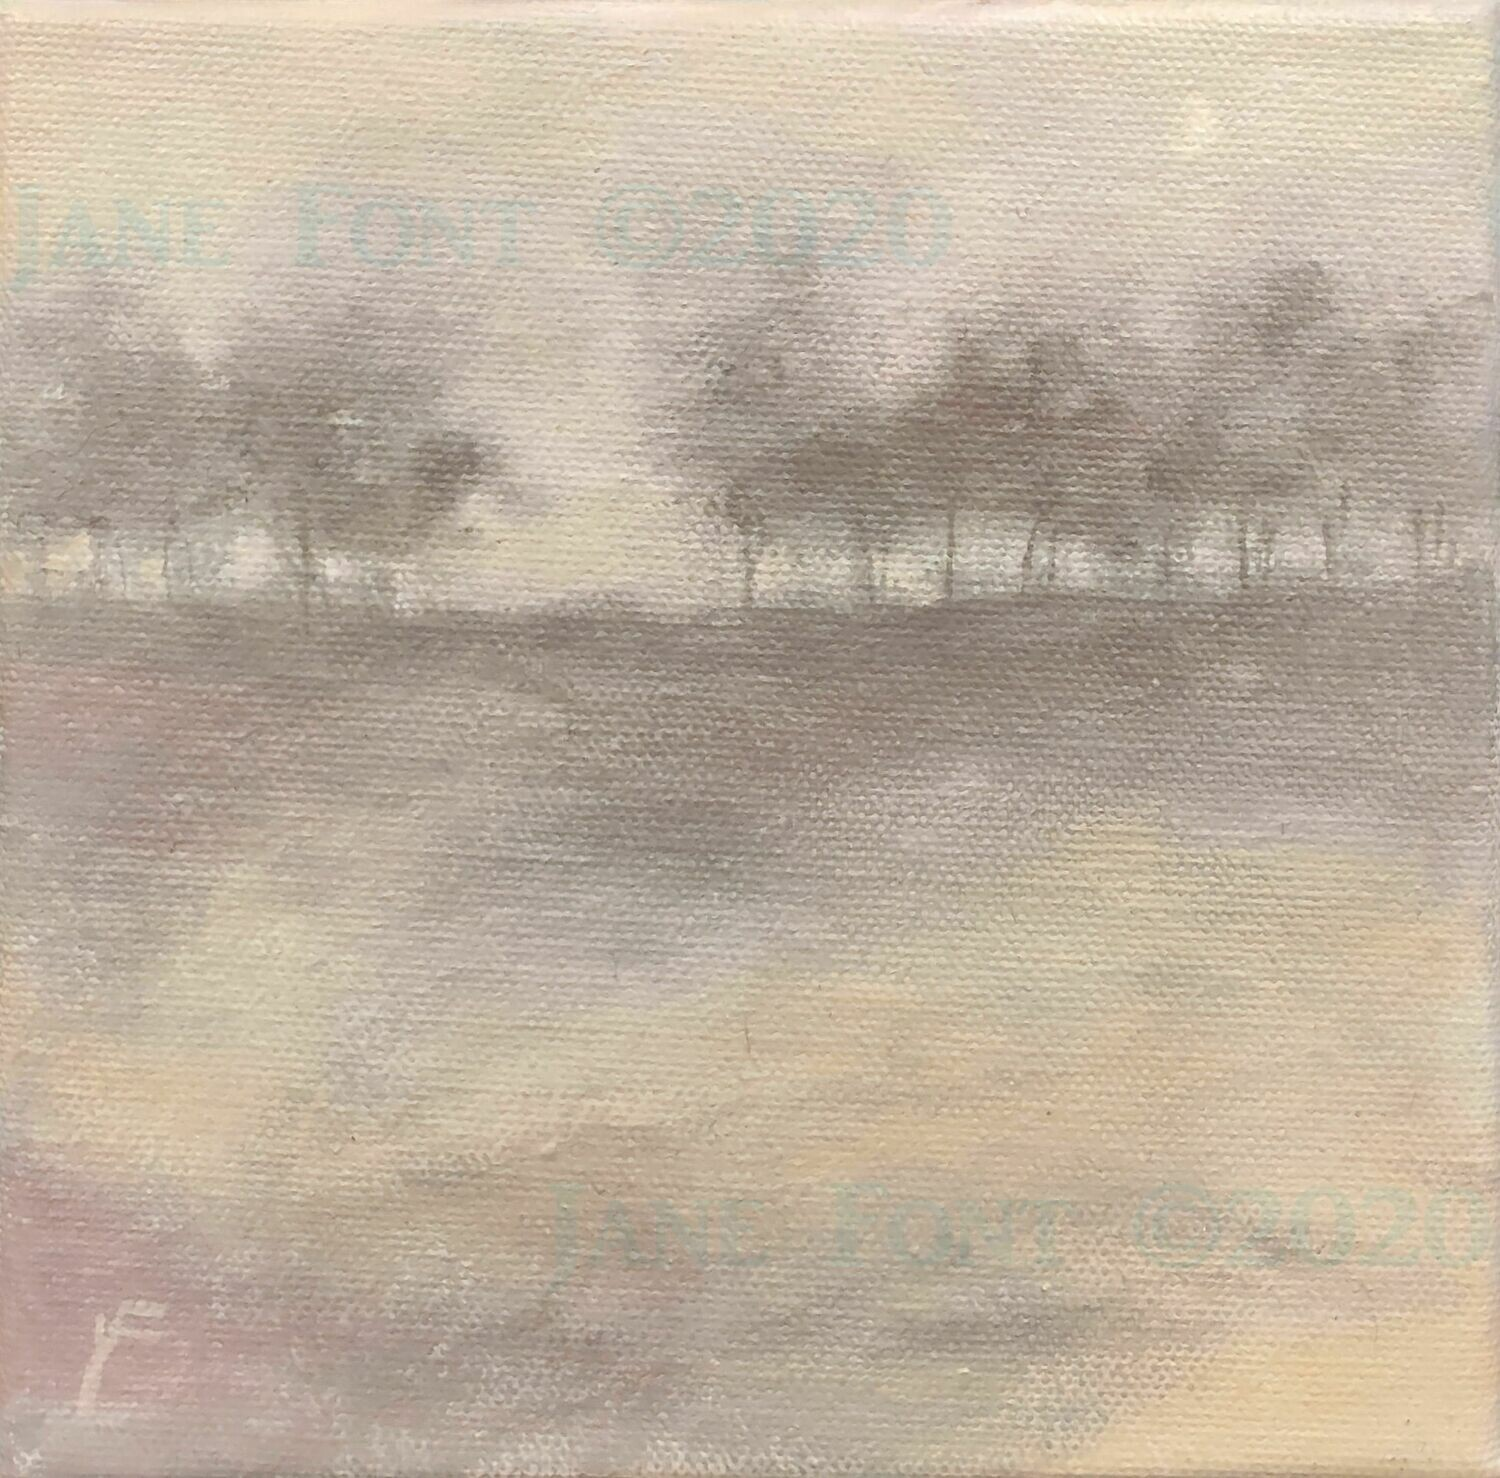 Early Song 2 - Original Acrylic Landscape by Jane Font